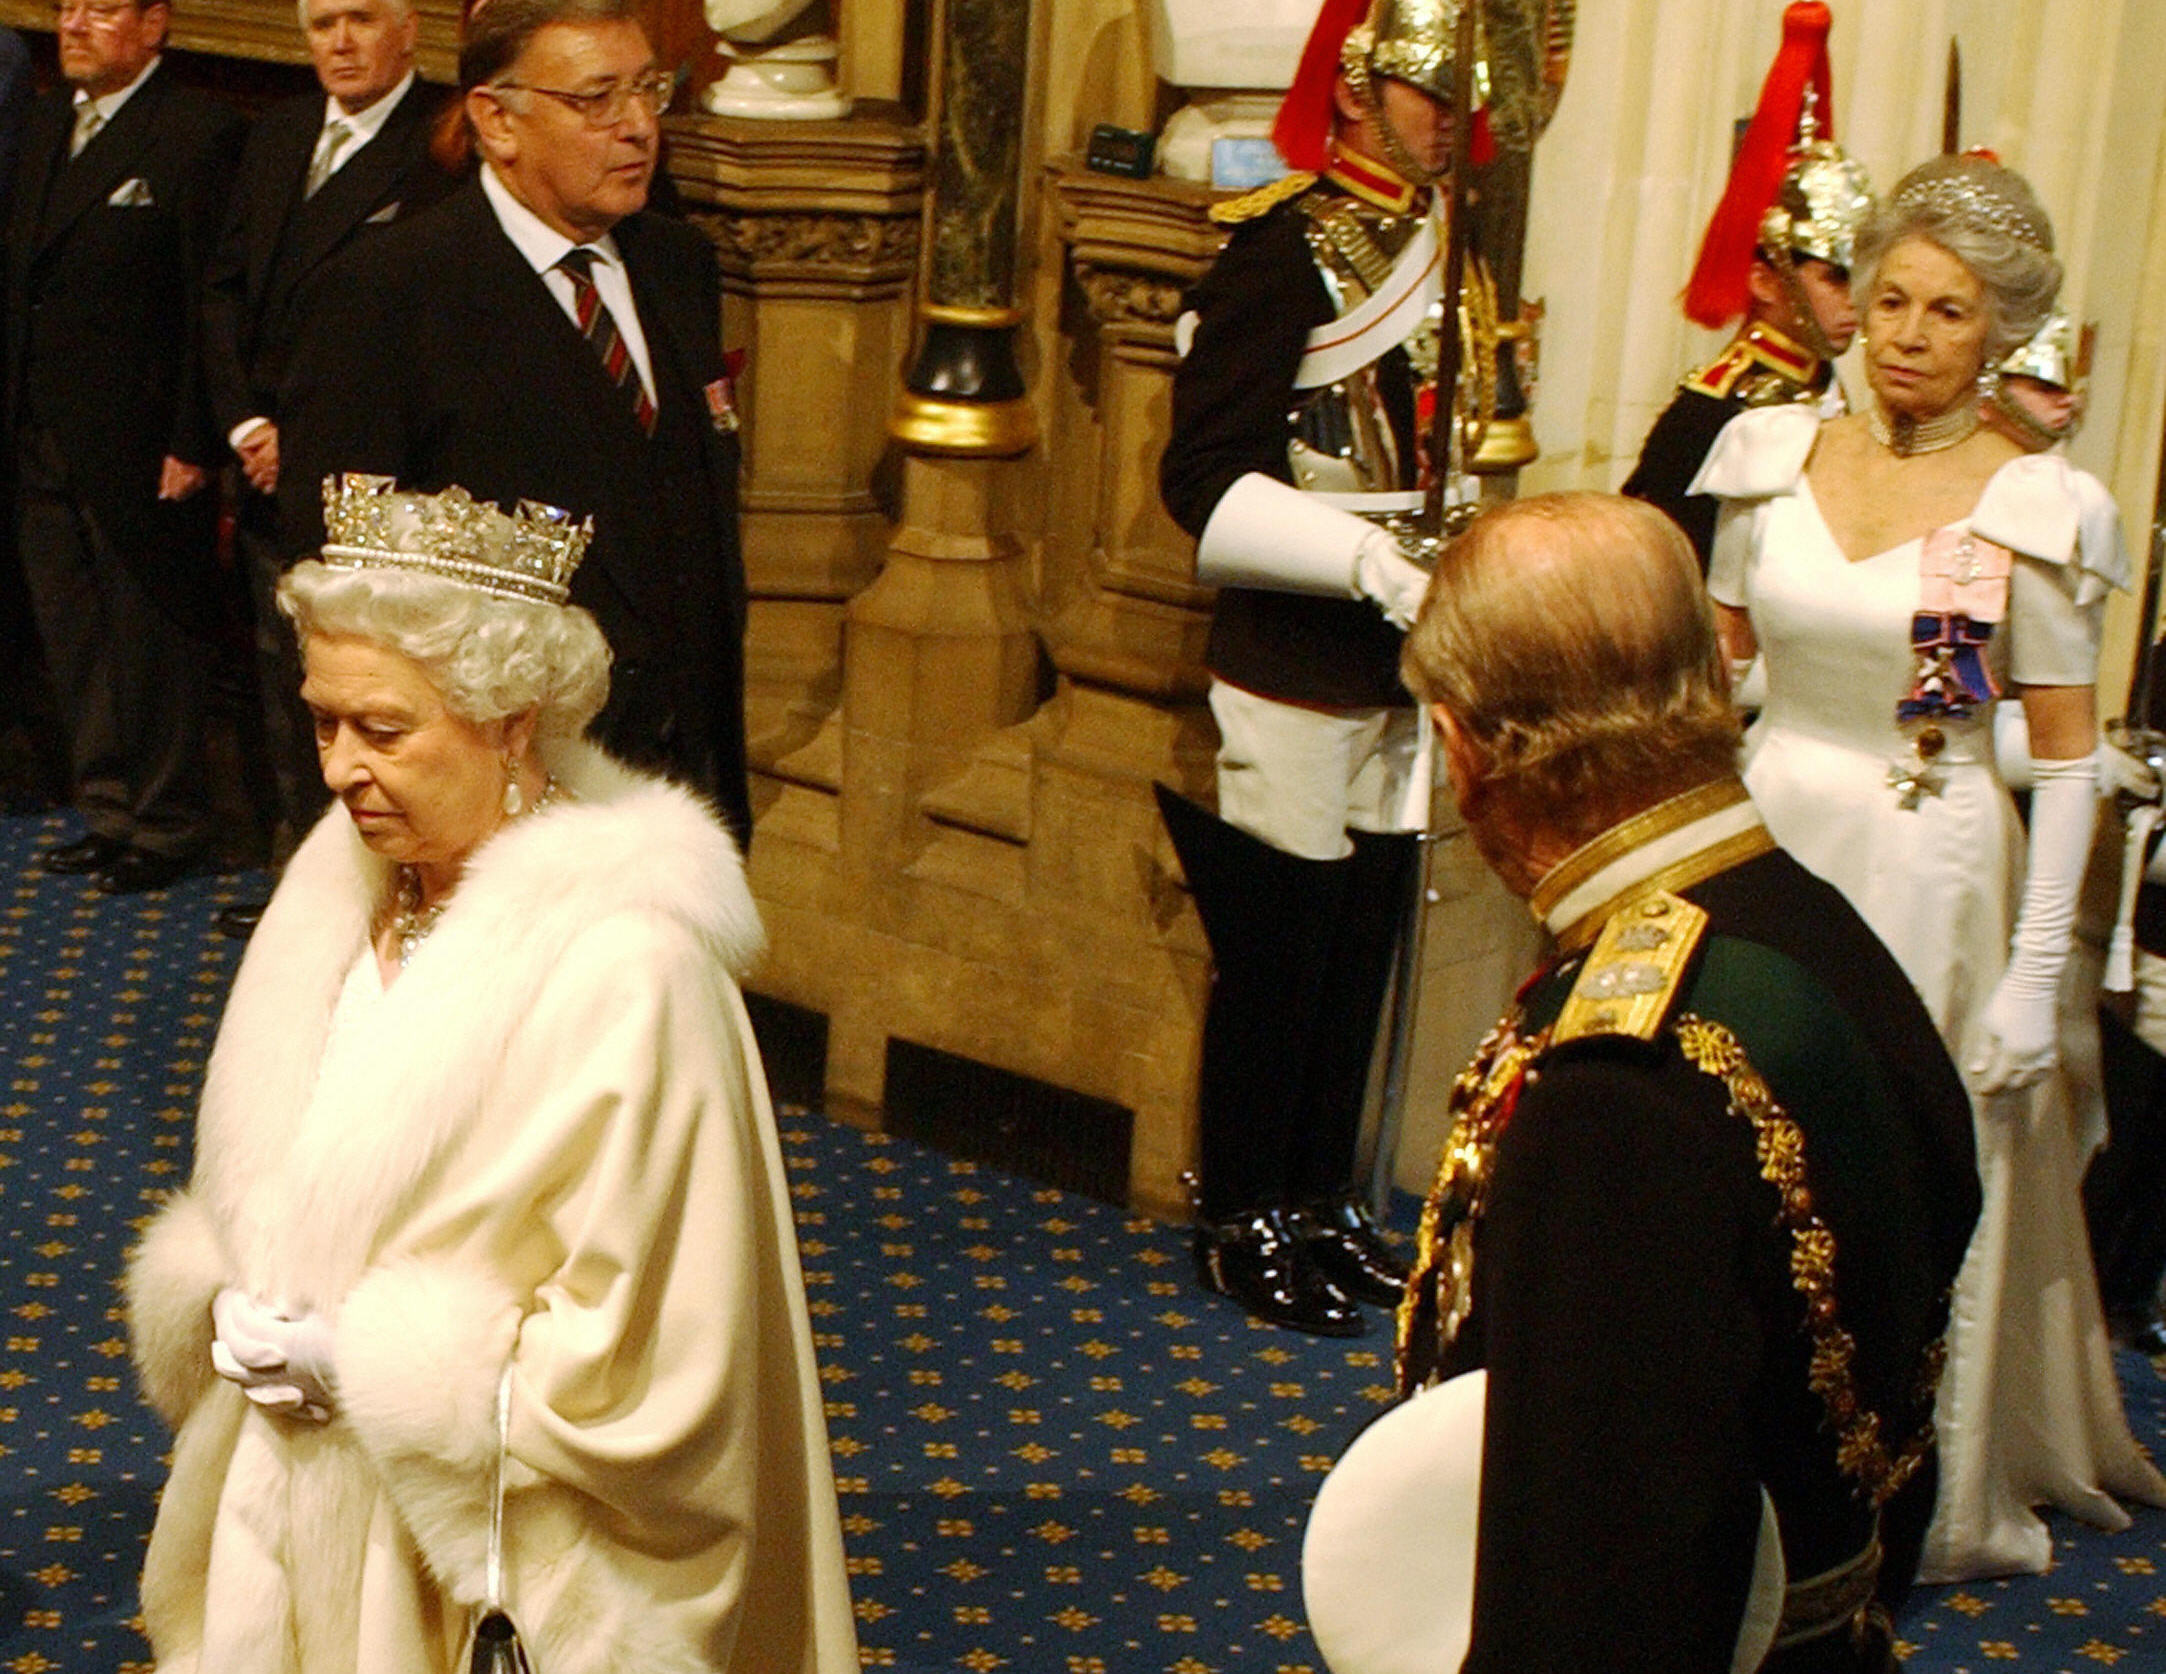 Queen Elizabeth II arrives on the Norman Porch as Prince Phillip looks back to a lady in waiting